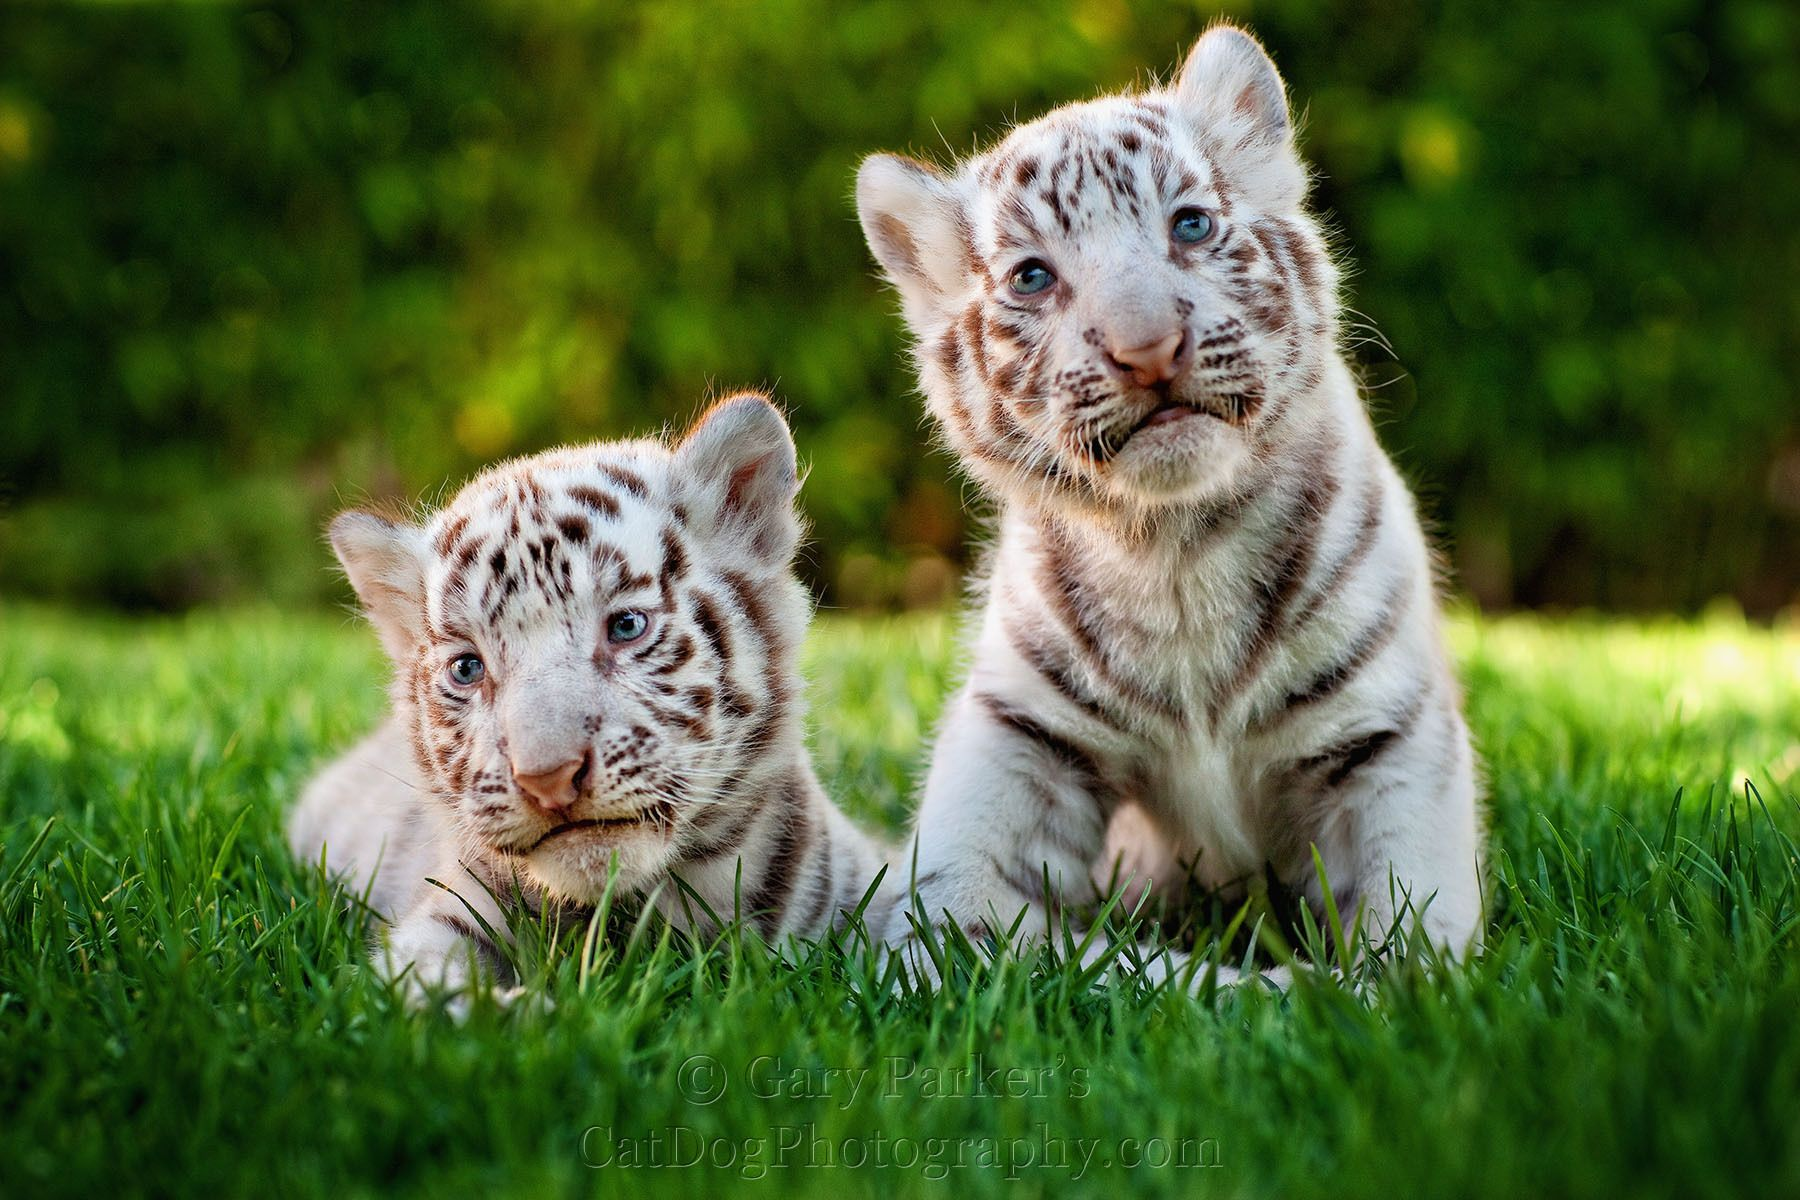 white tiger holding baby - photo #8